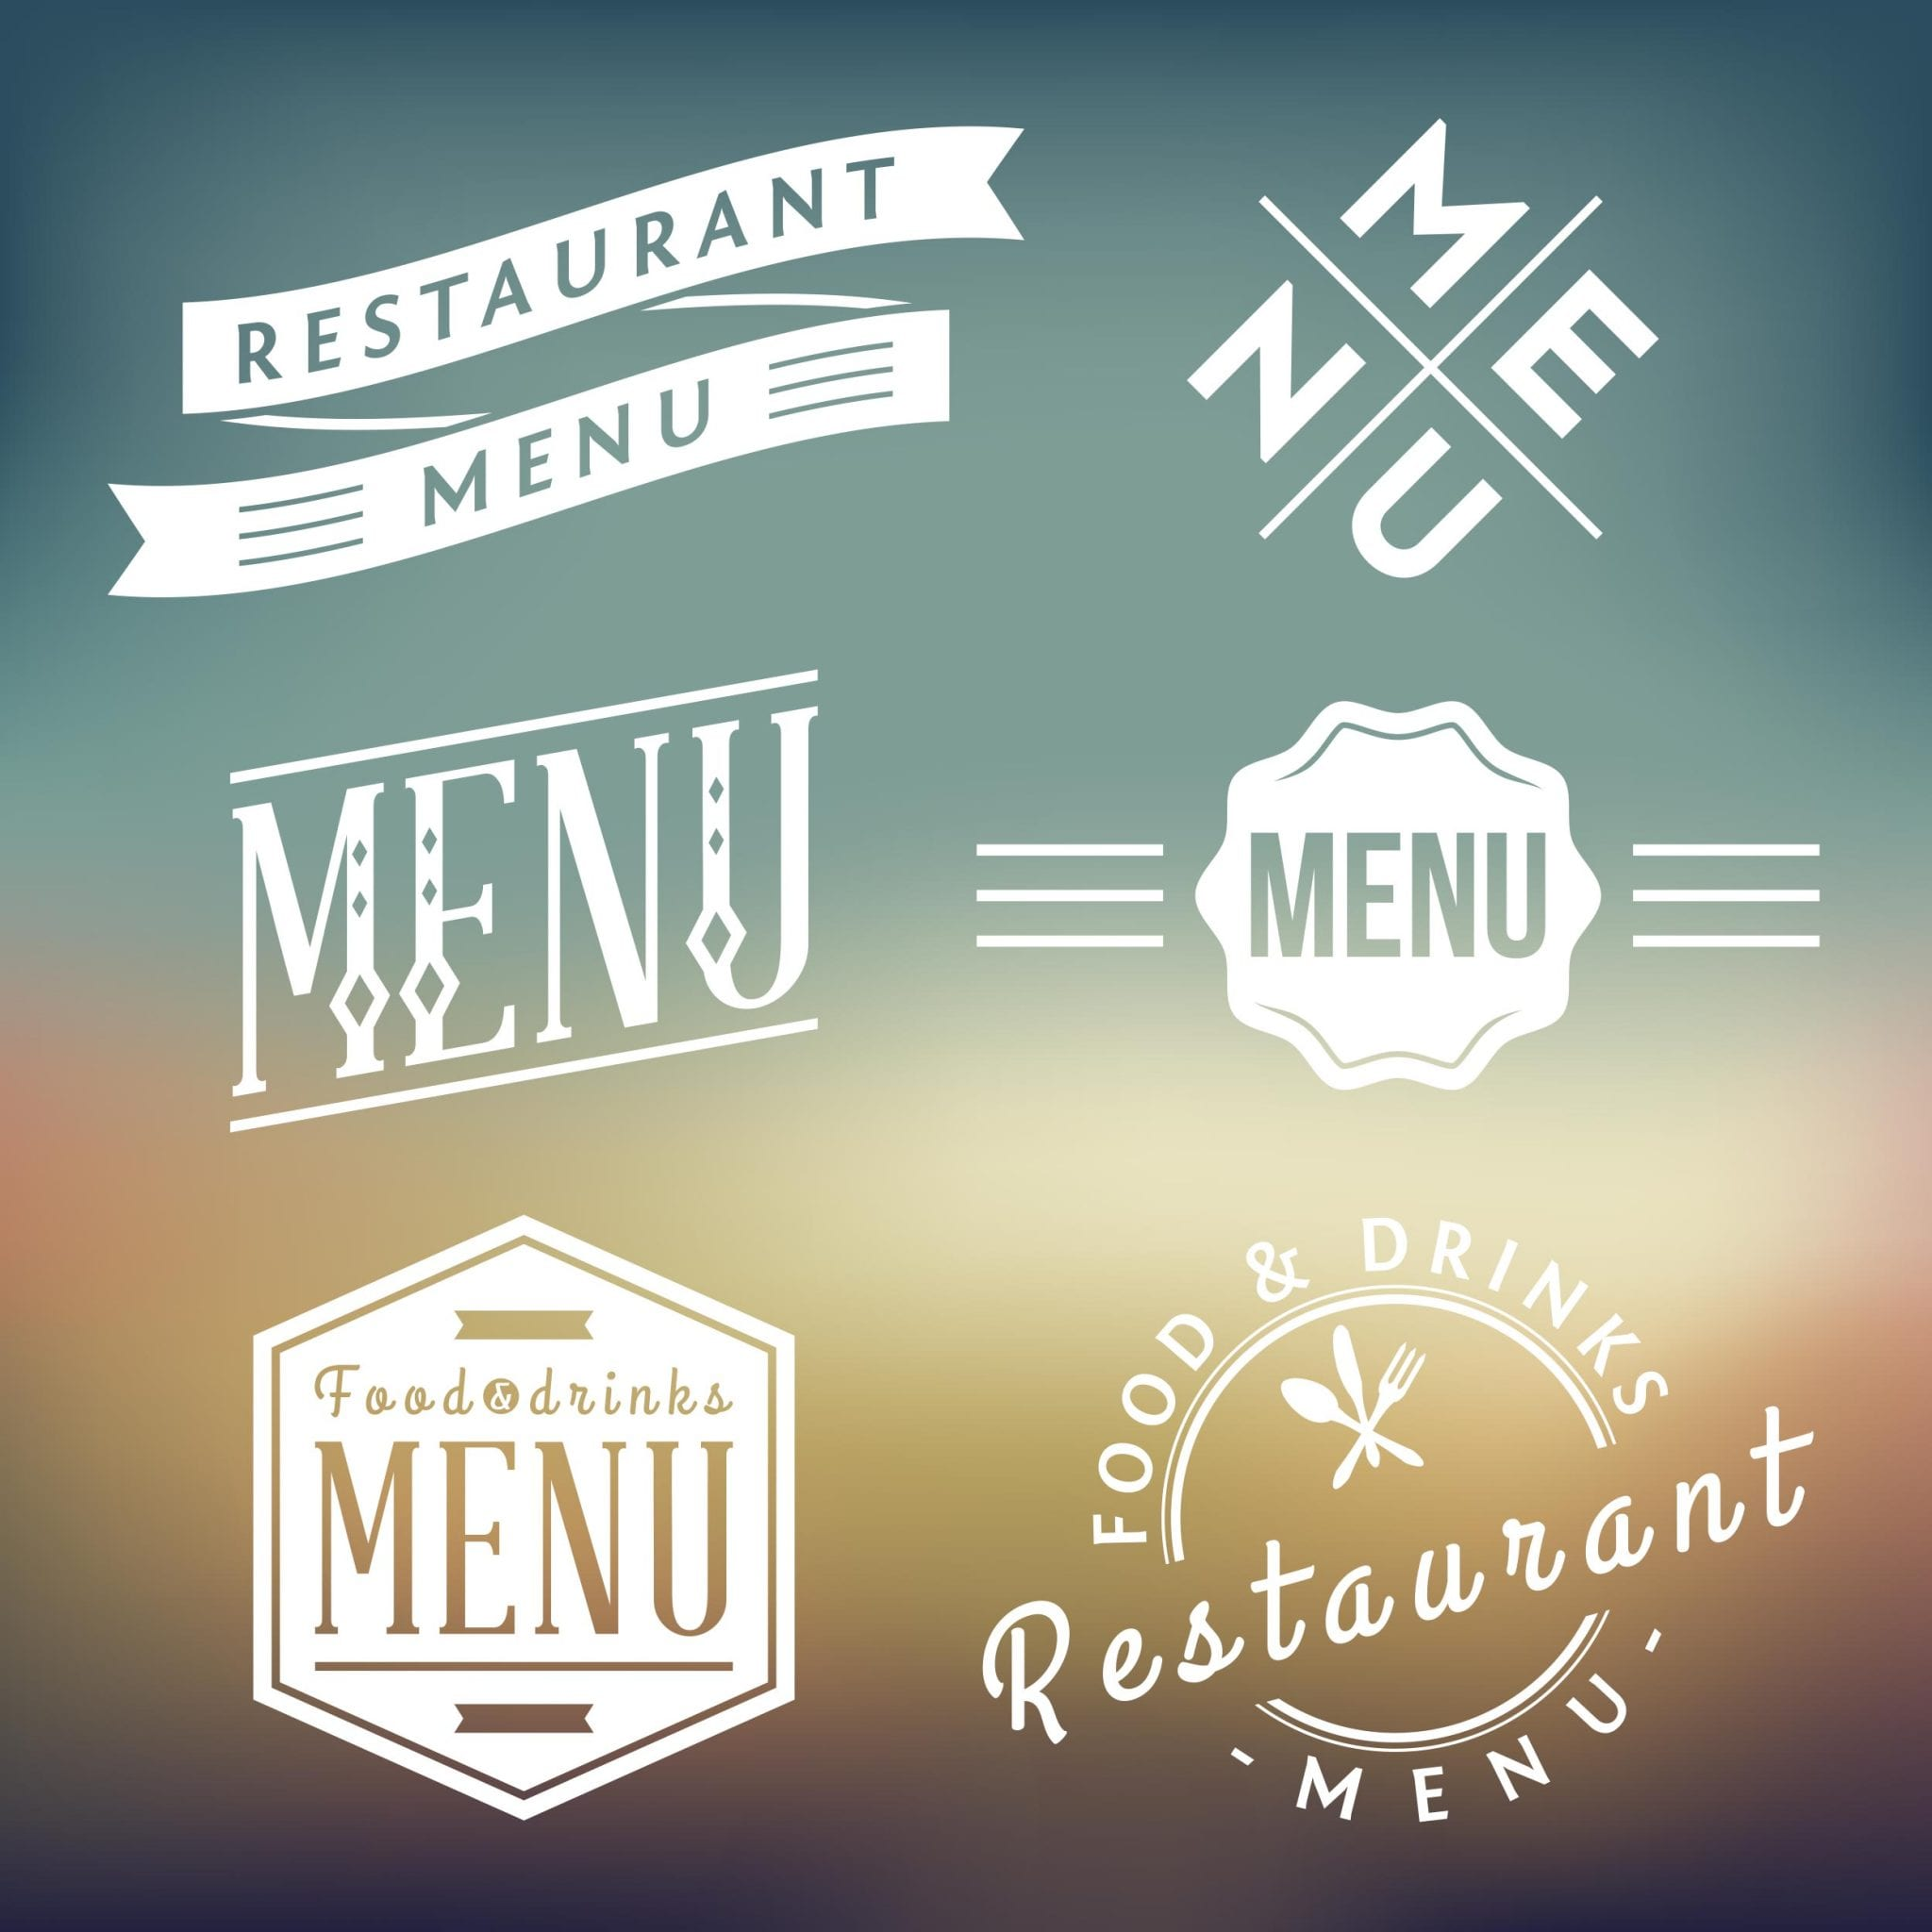 Restaurant Menu Background Design